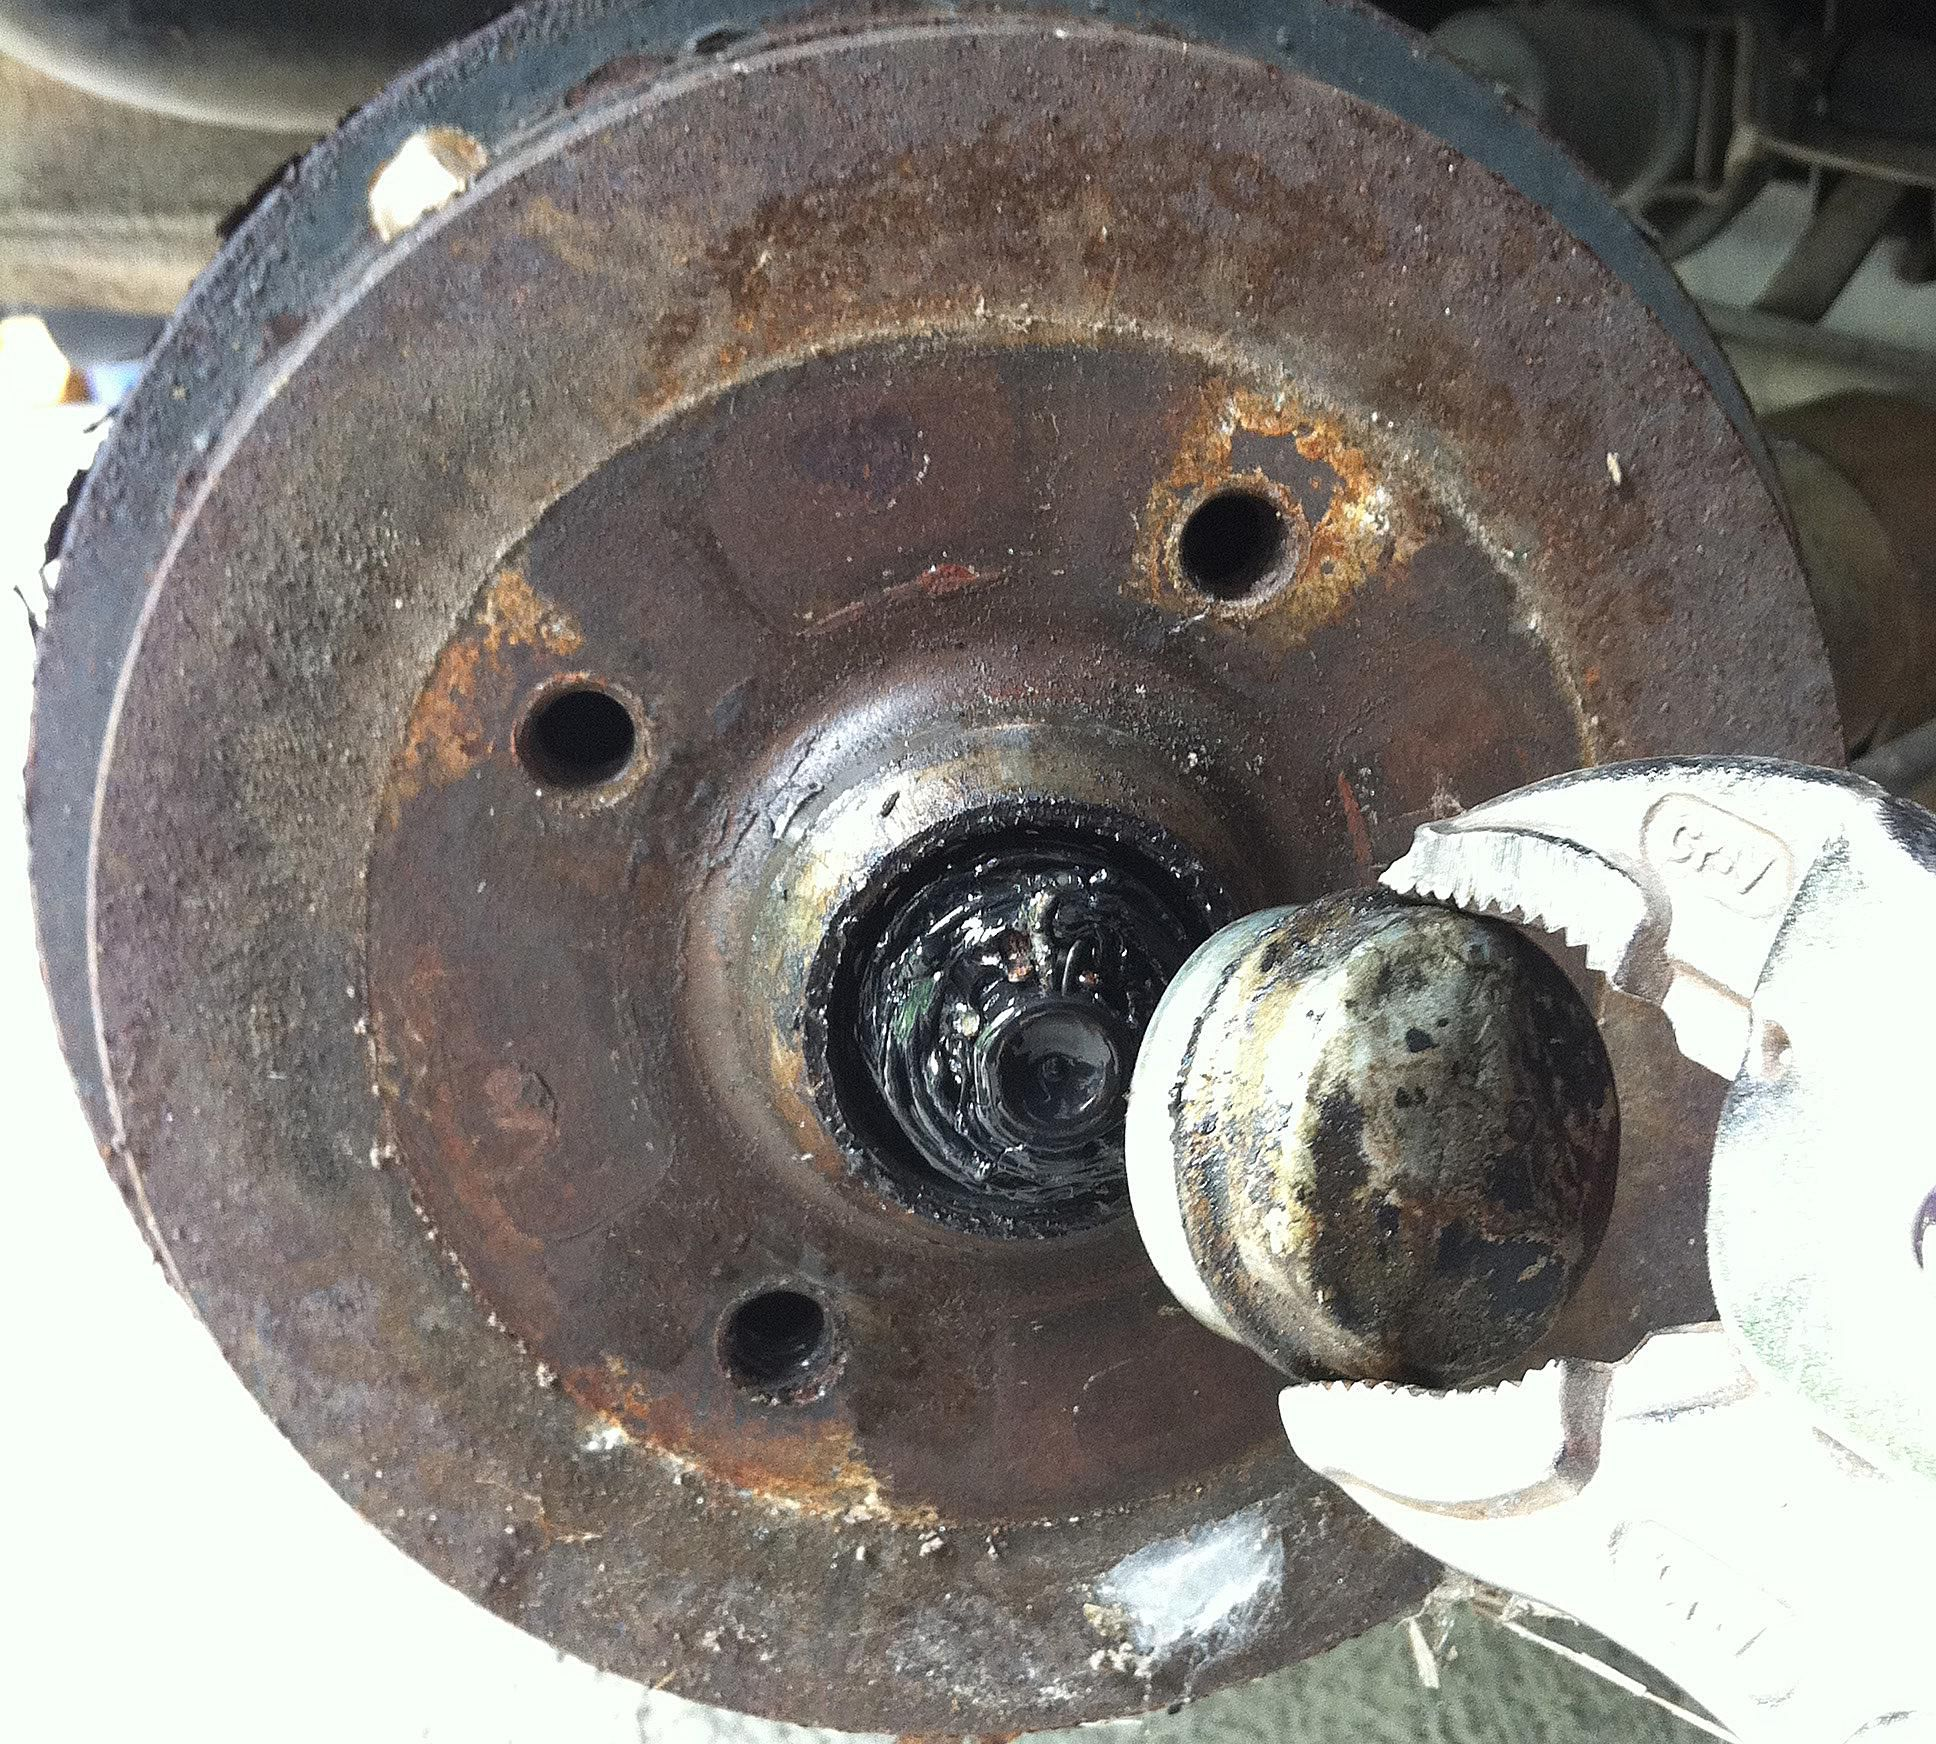 What Is A Wheel Bearing Diagnosing A Wheel Bearing Noise: Repack Or Change Wheel Bearings And Diagnose Problems